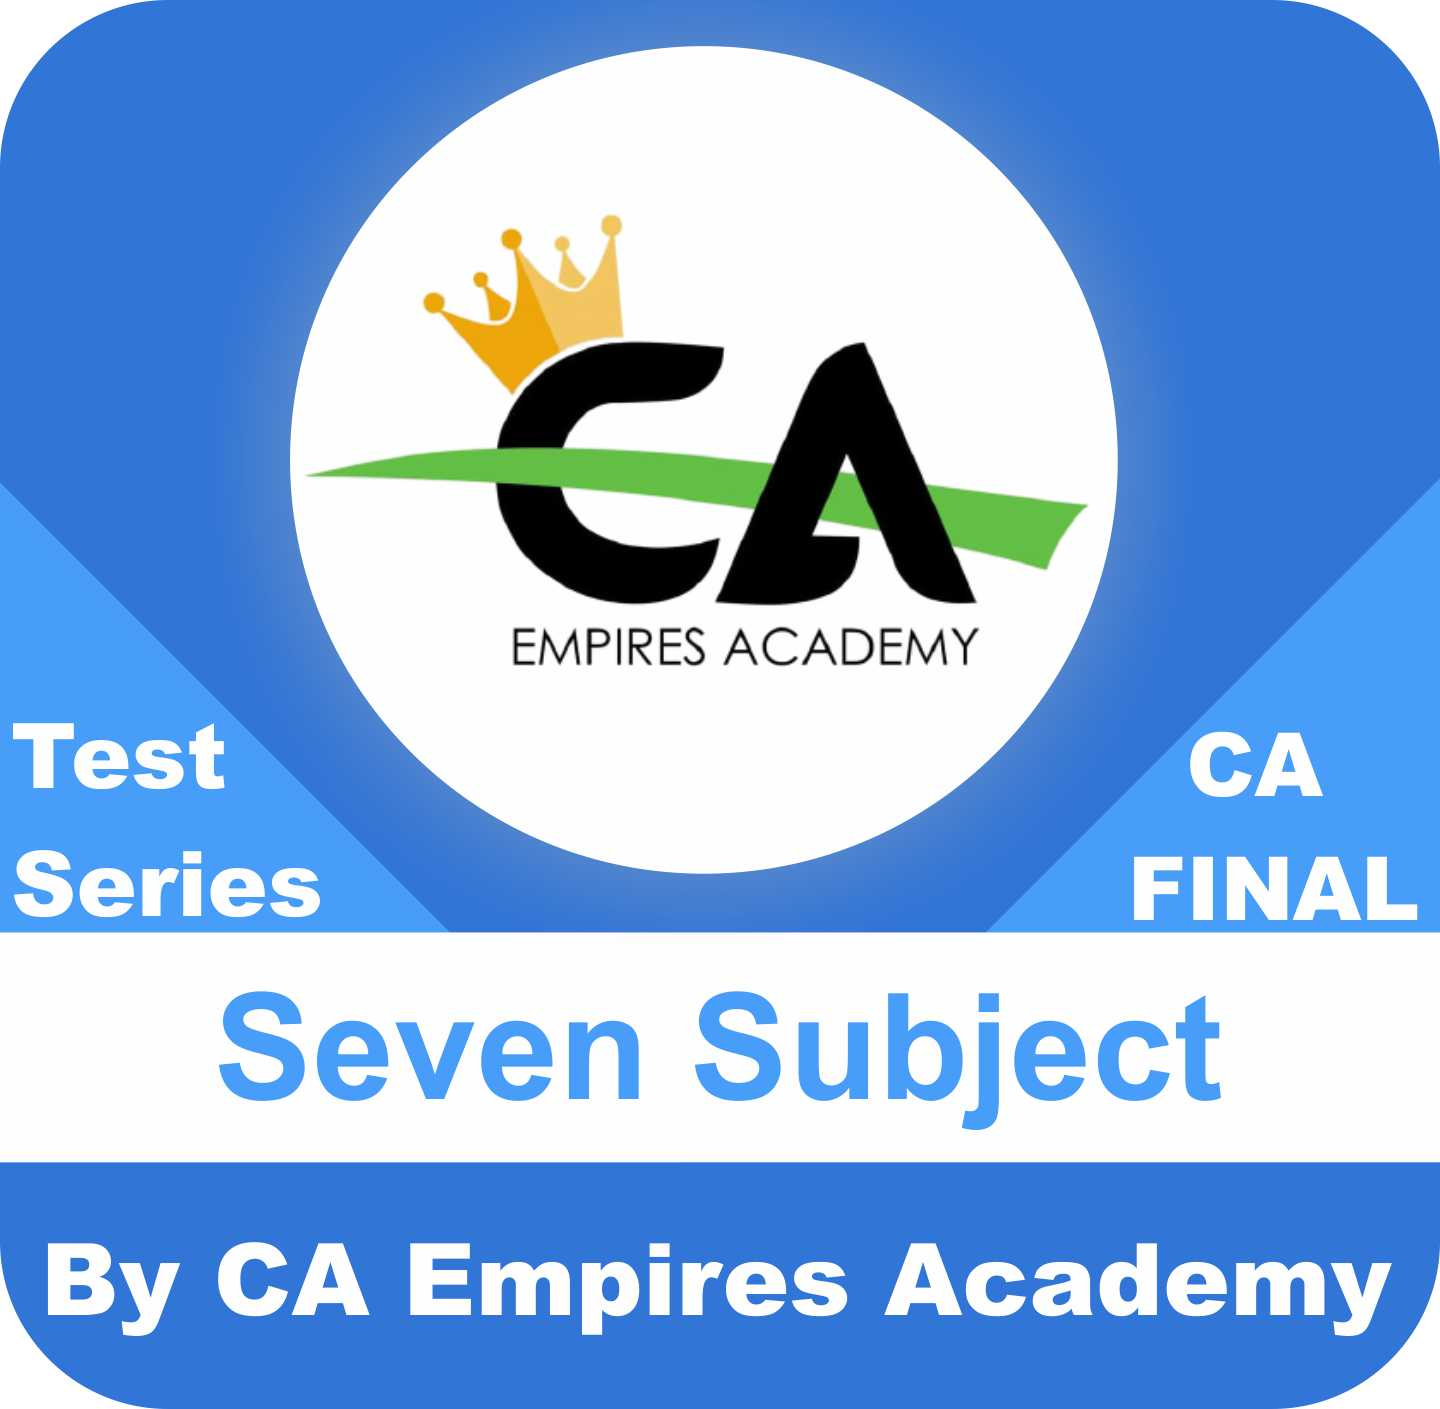 CA Final Any Seven Subject Test Series in Bronze Plan by CA Empires Academy